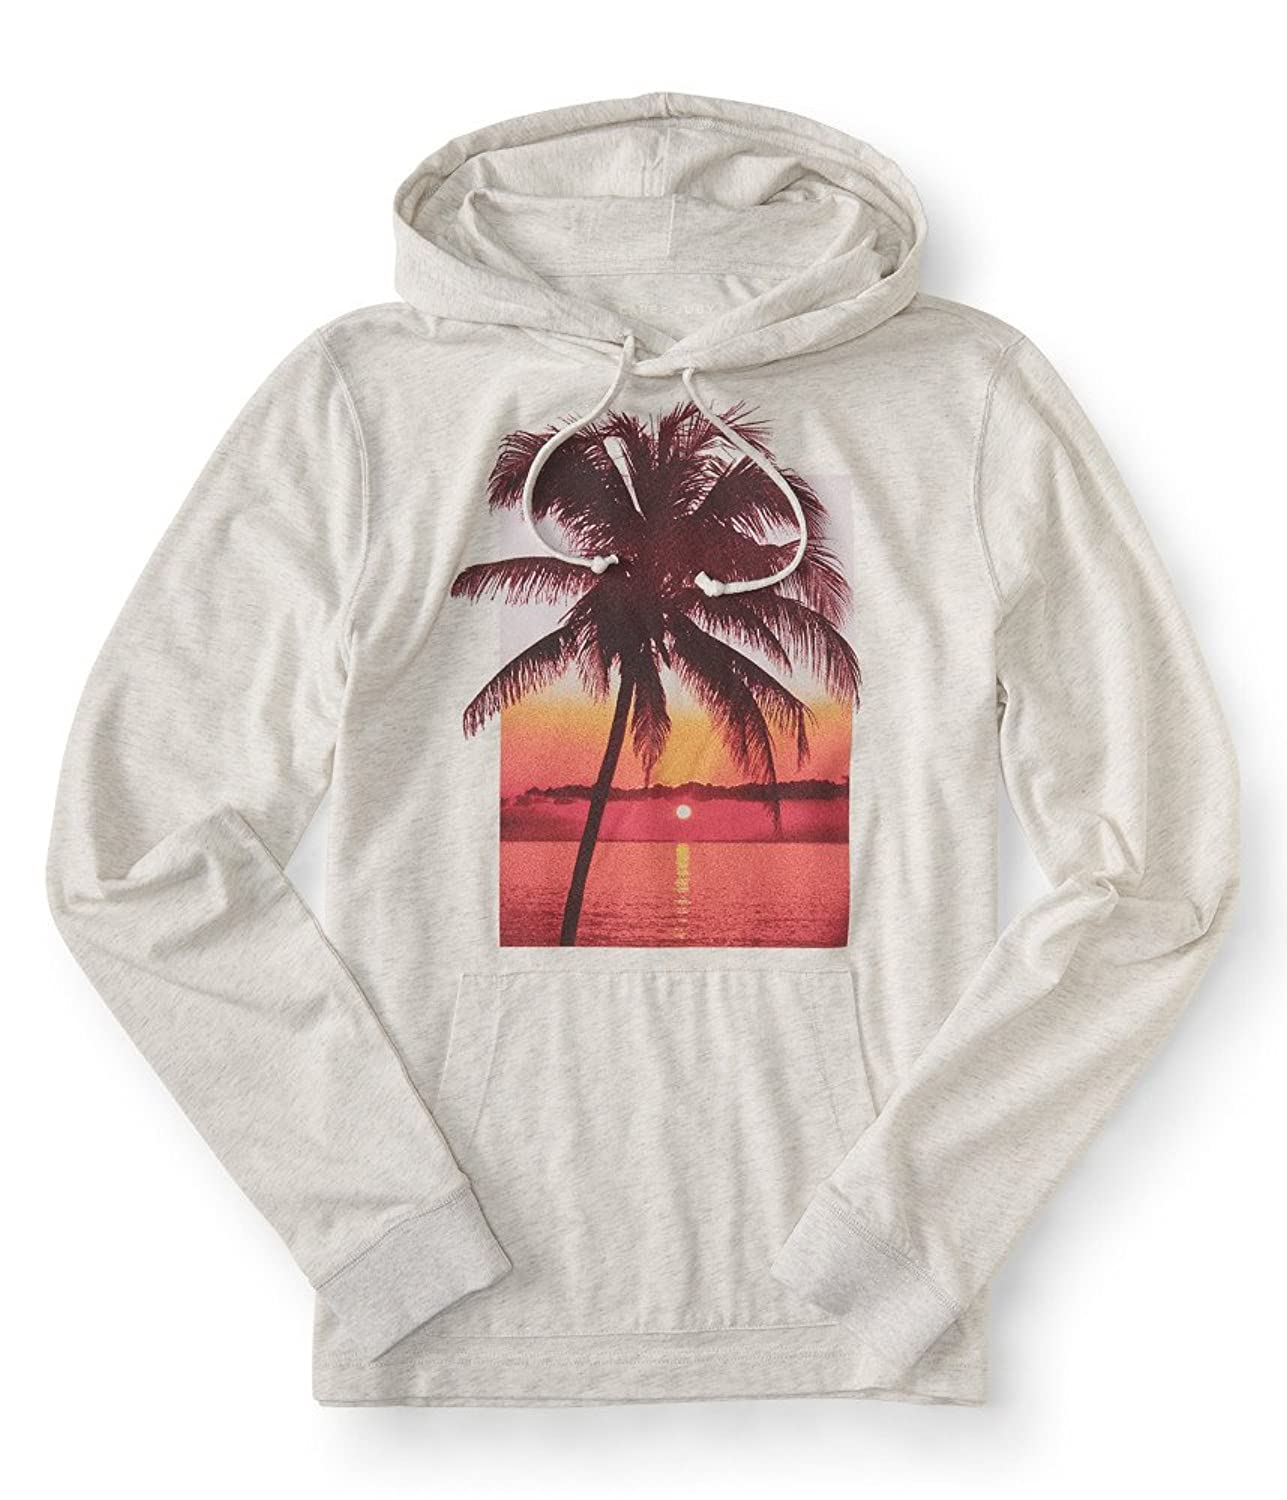 Aeropostale Men's Cape Juby Palm Sunset Hooded Tee Shirt